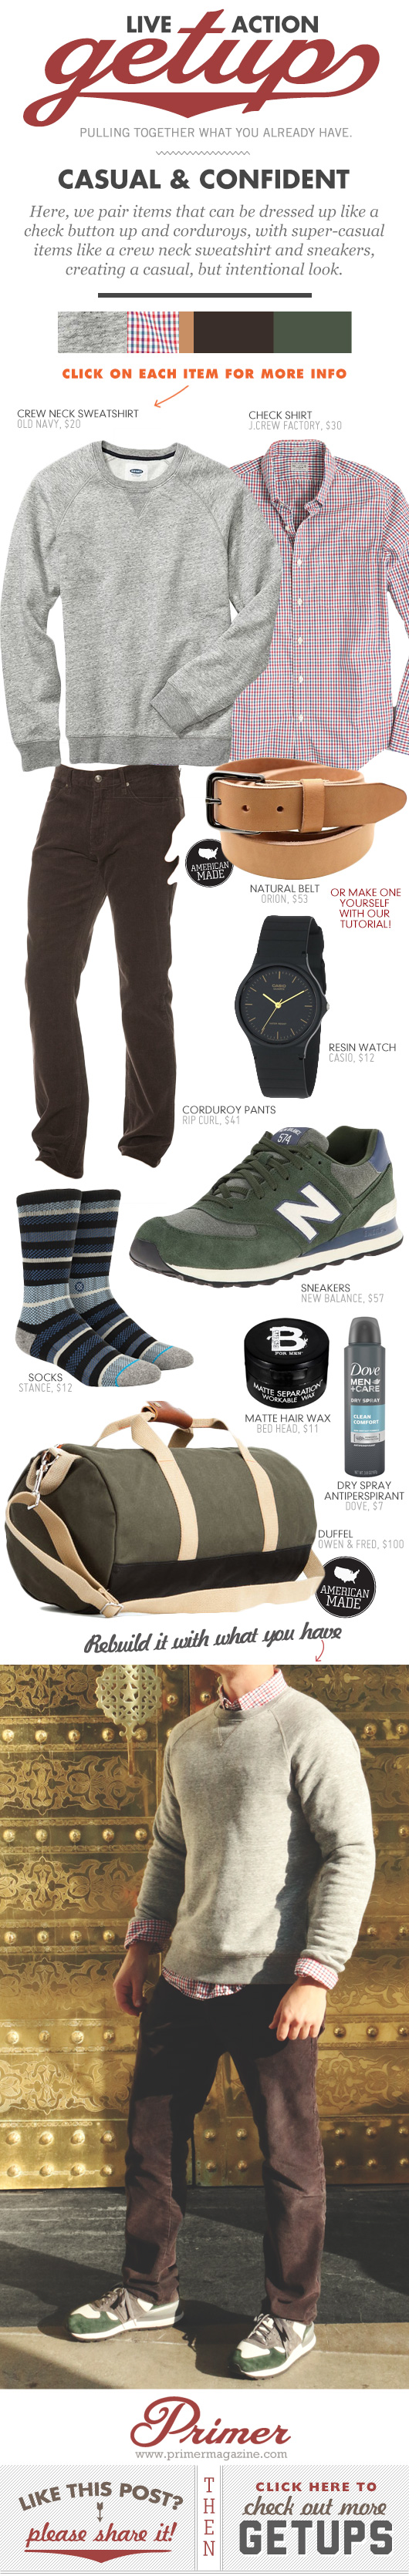 Getup Casual and Confident - gray sweatshirt, button up shirt, brown corduroys, green sneakers